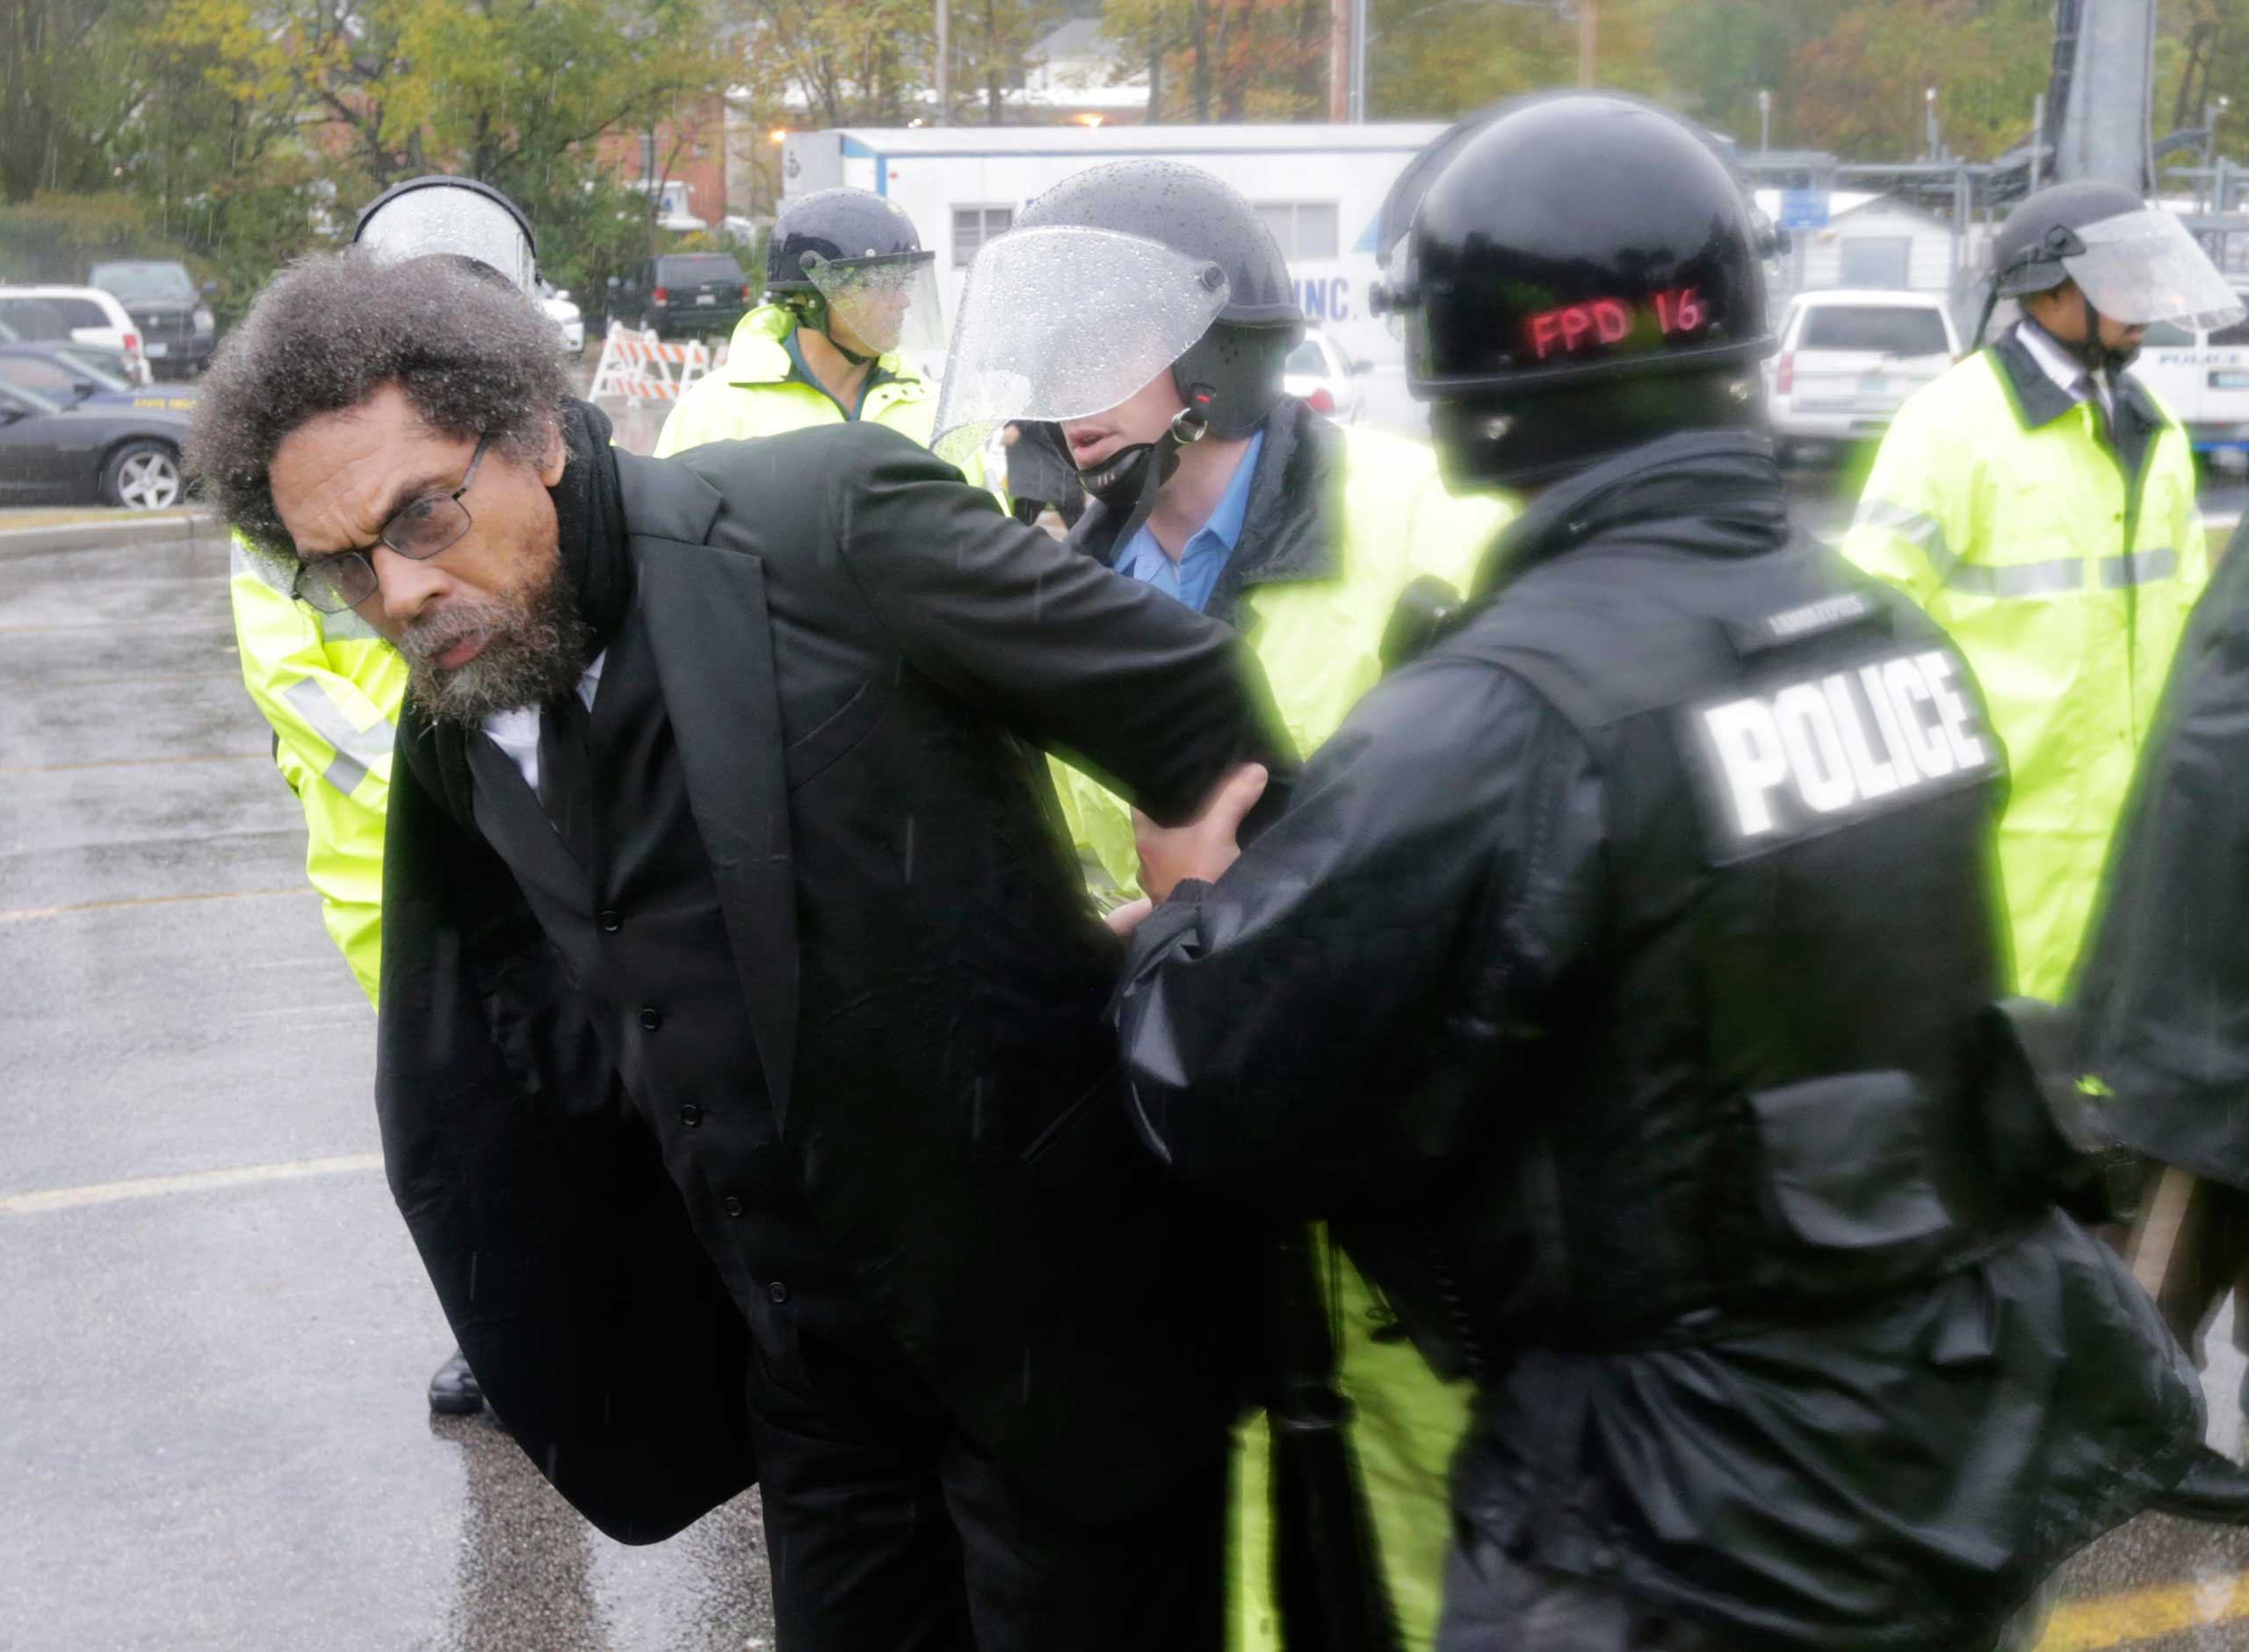 Academic Cornel West is taken into custody after performing an act of civil disobedience at the Ferguson, Mo., police station on Oct. 13, 2014.